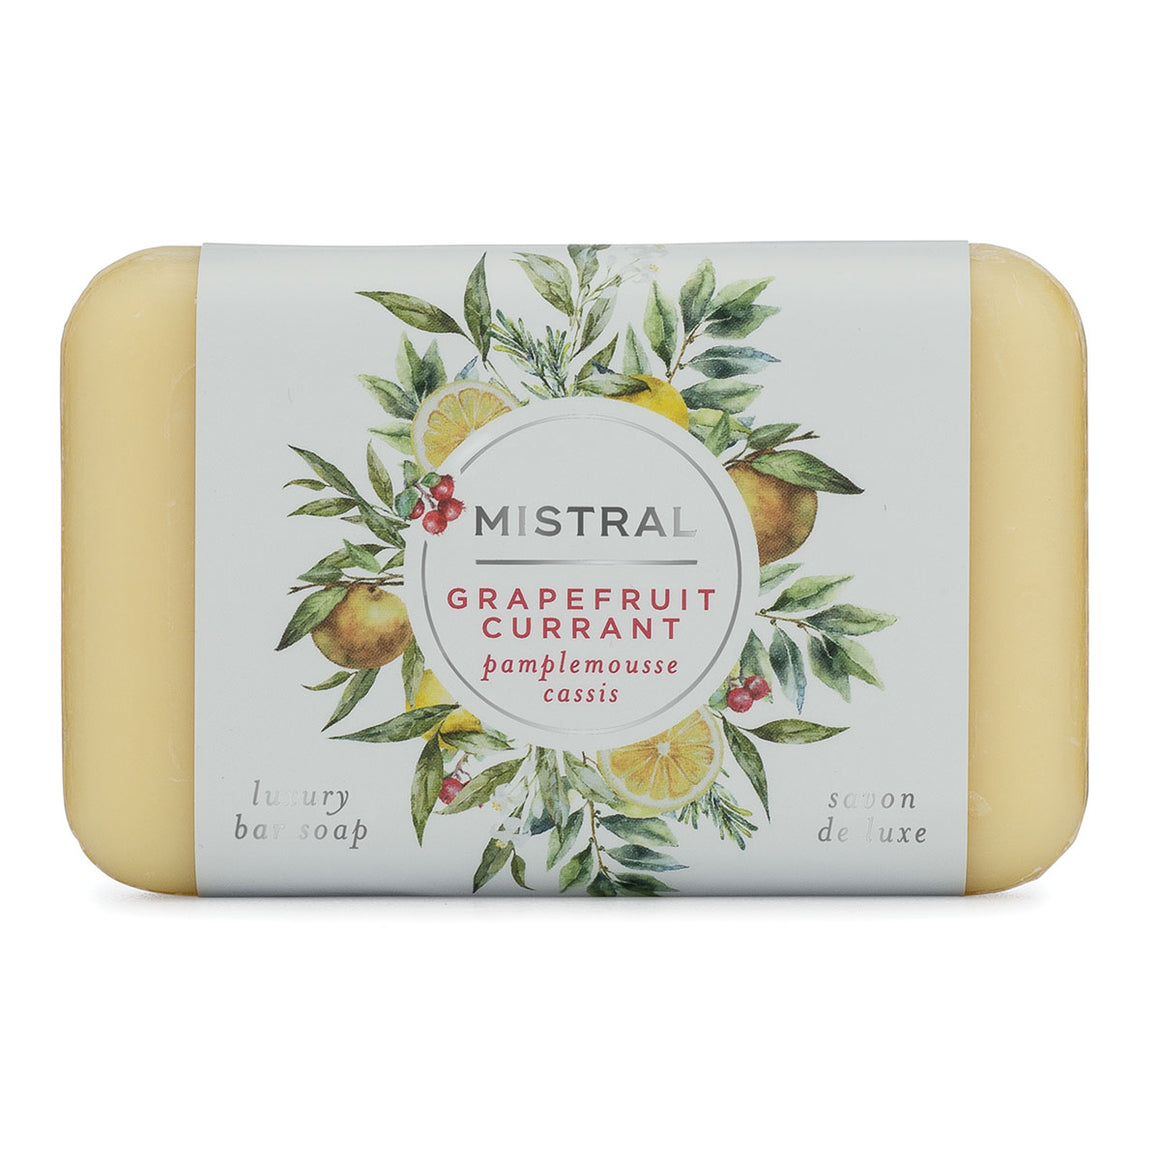 GRAPEFRUIT CURRANT CLASSIC BAR SOAP